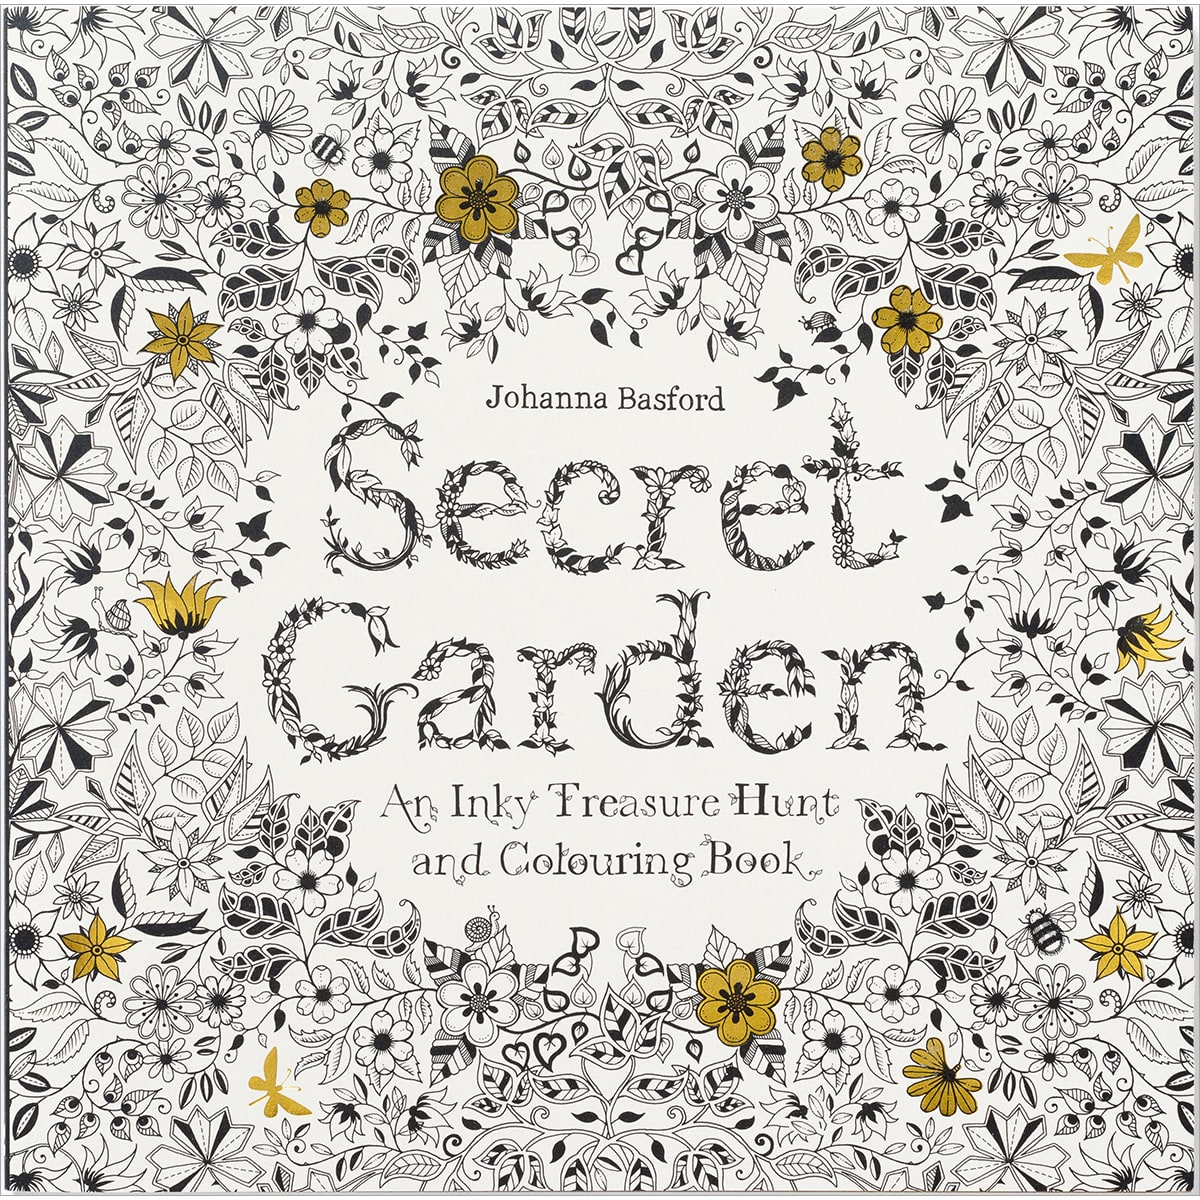 - Secret Garden: An Inky Treasure Hunt And Coloring Book (for Adults,  Mindfulness Coloring) (Paperback) - Walmart.com - Walmart.com